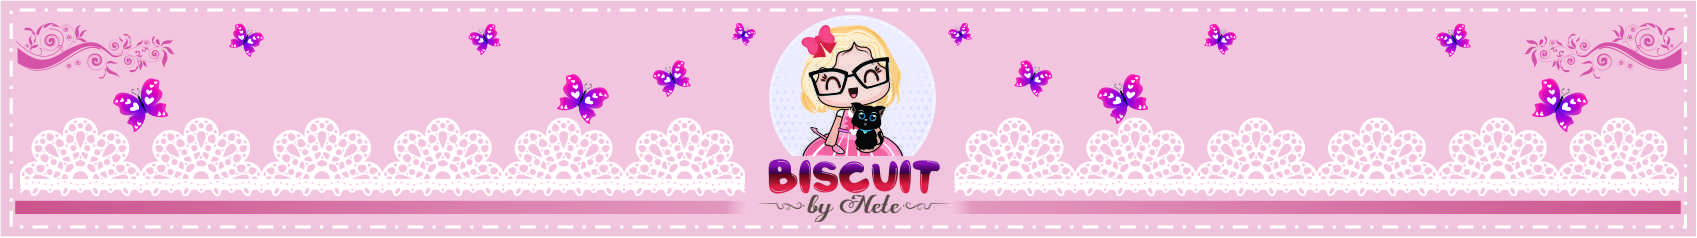 Biscuit by net